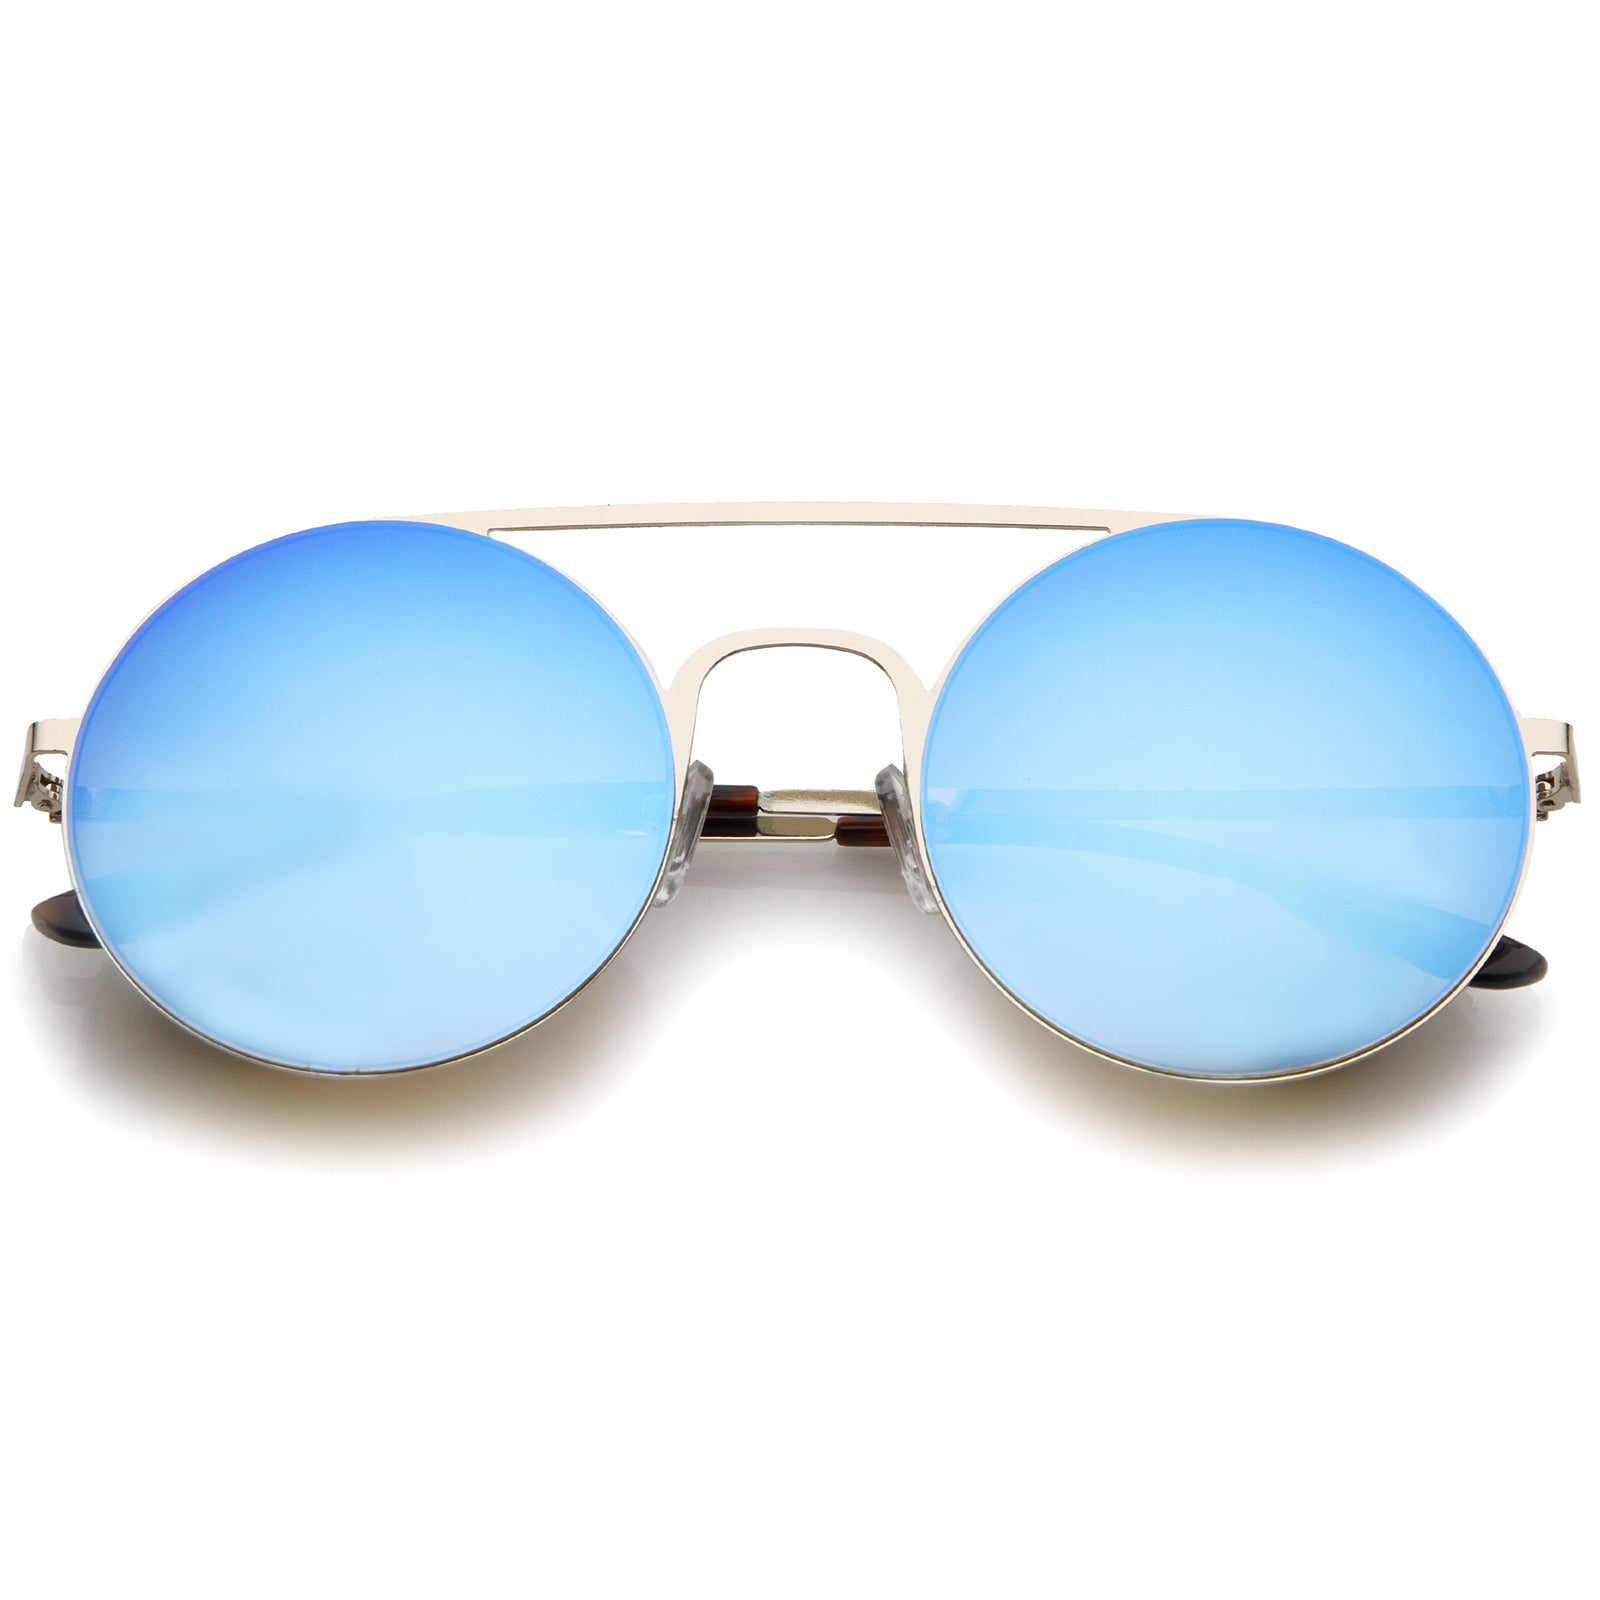 Modern Slim Double Nose Bridge Colored Mirror Flat Lens Round Sunglasses 53mm - sunglass.la - 1